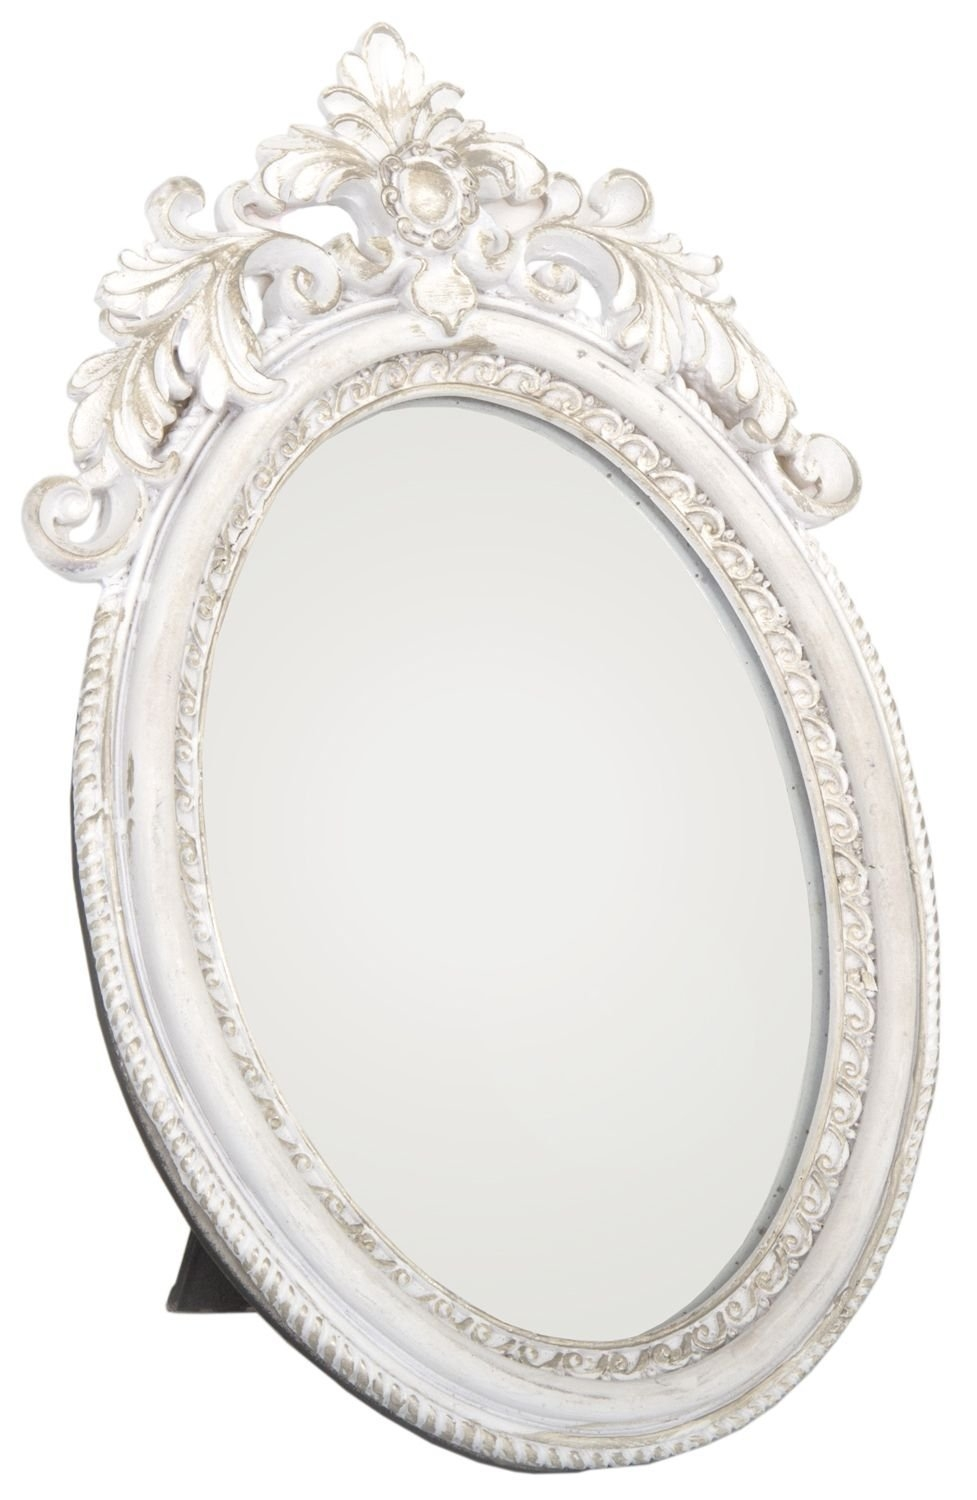 Stunning Shab Chic Cream And Gold Painted Mirror Ideal For Within Shabby Chic Cream Mirror (Image 12 of 15)